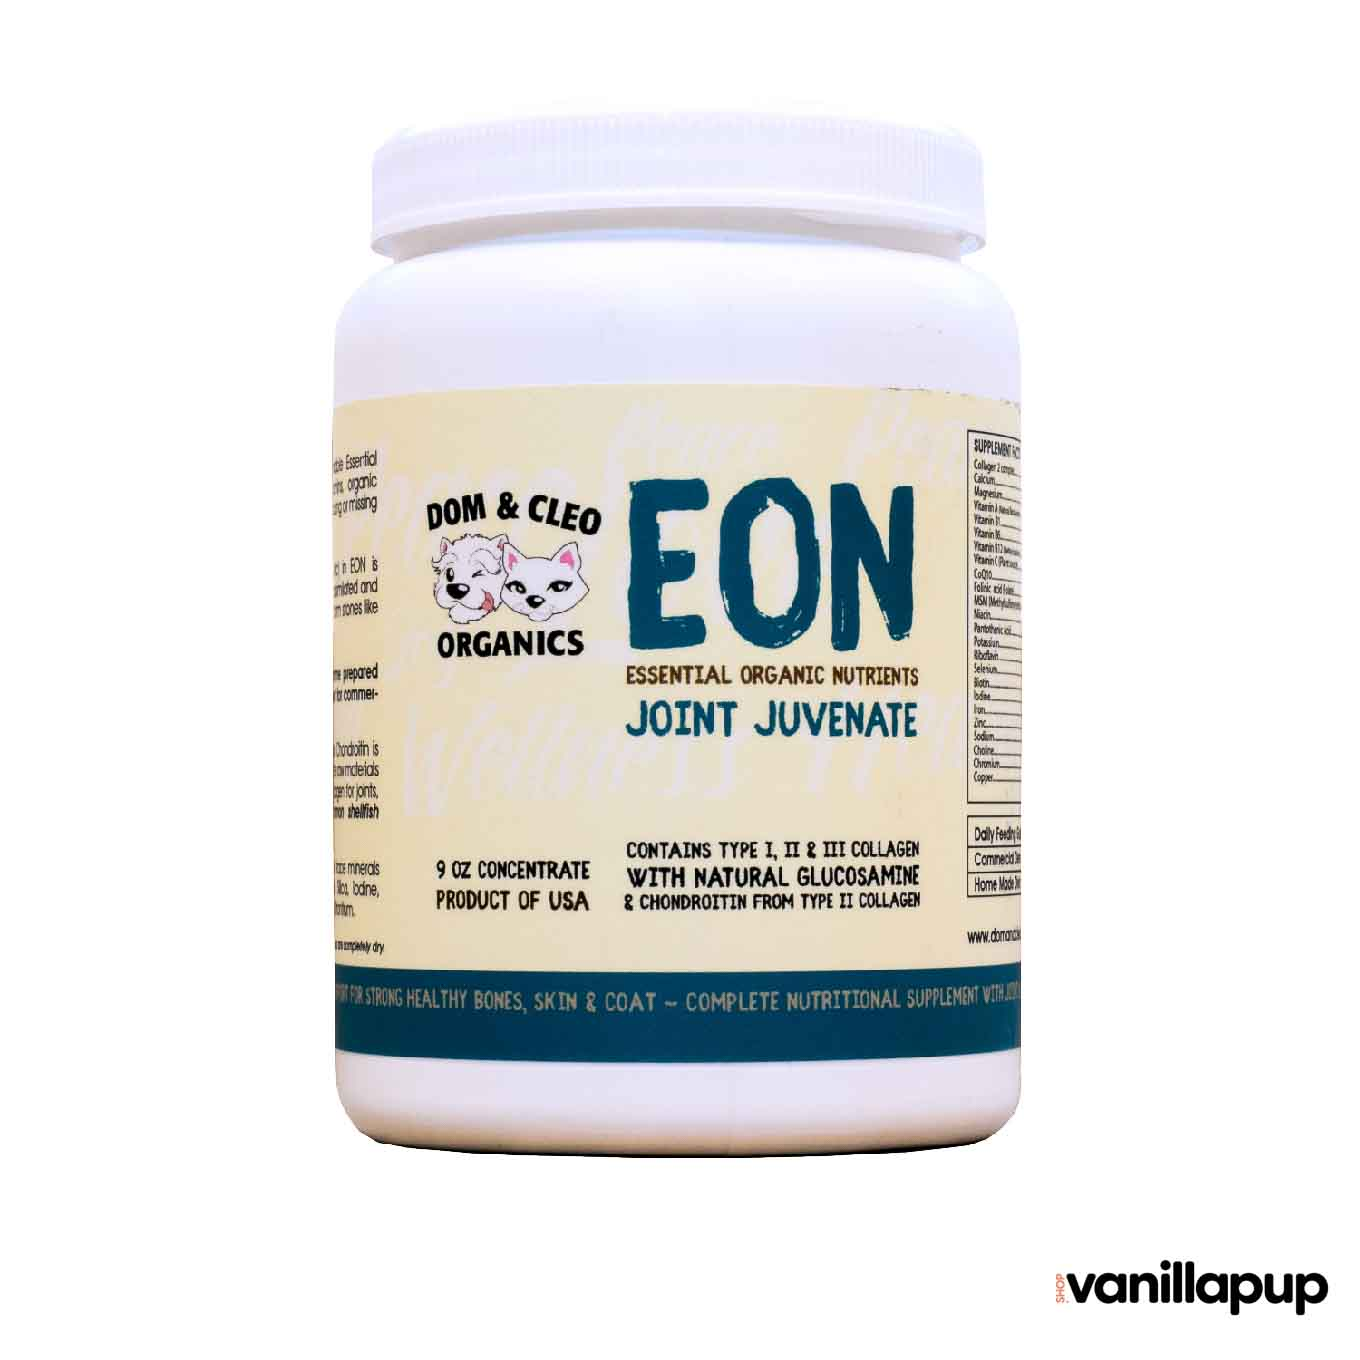 Dom & Cleo Organics EON Joint Juvenate Supplement - Cats, Dogs, Dom & Cleo Organics, Health, Joint, Supplements - Shop Vanillapup